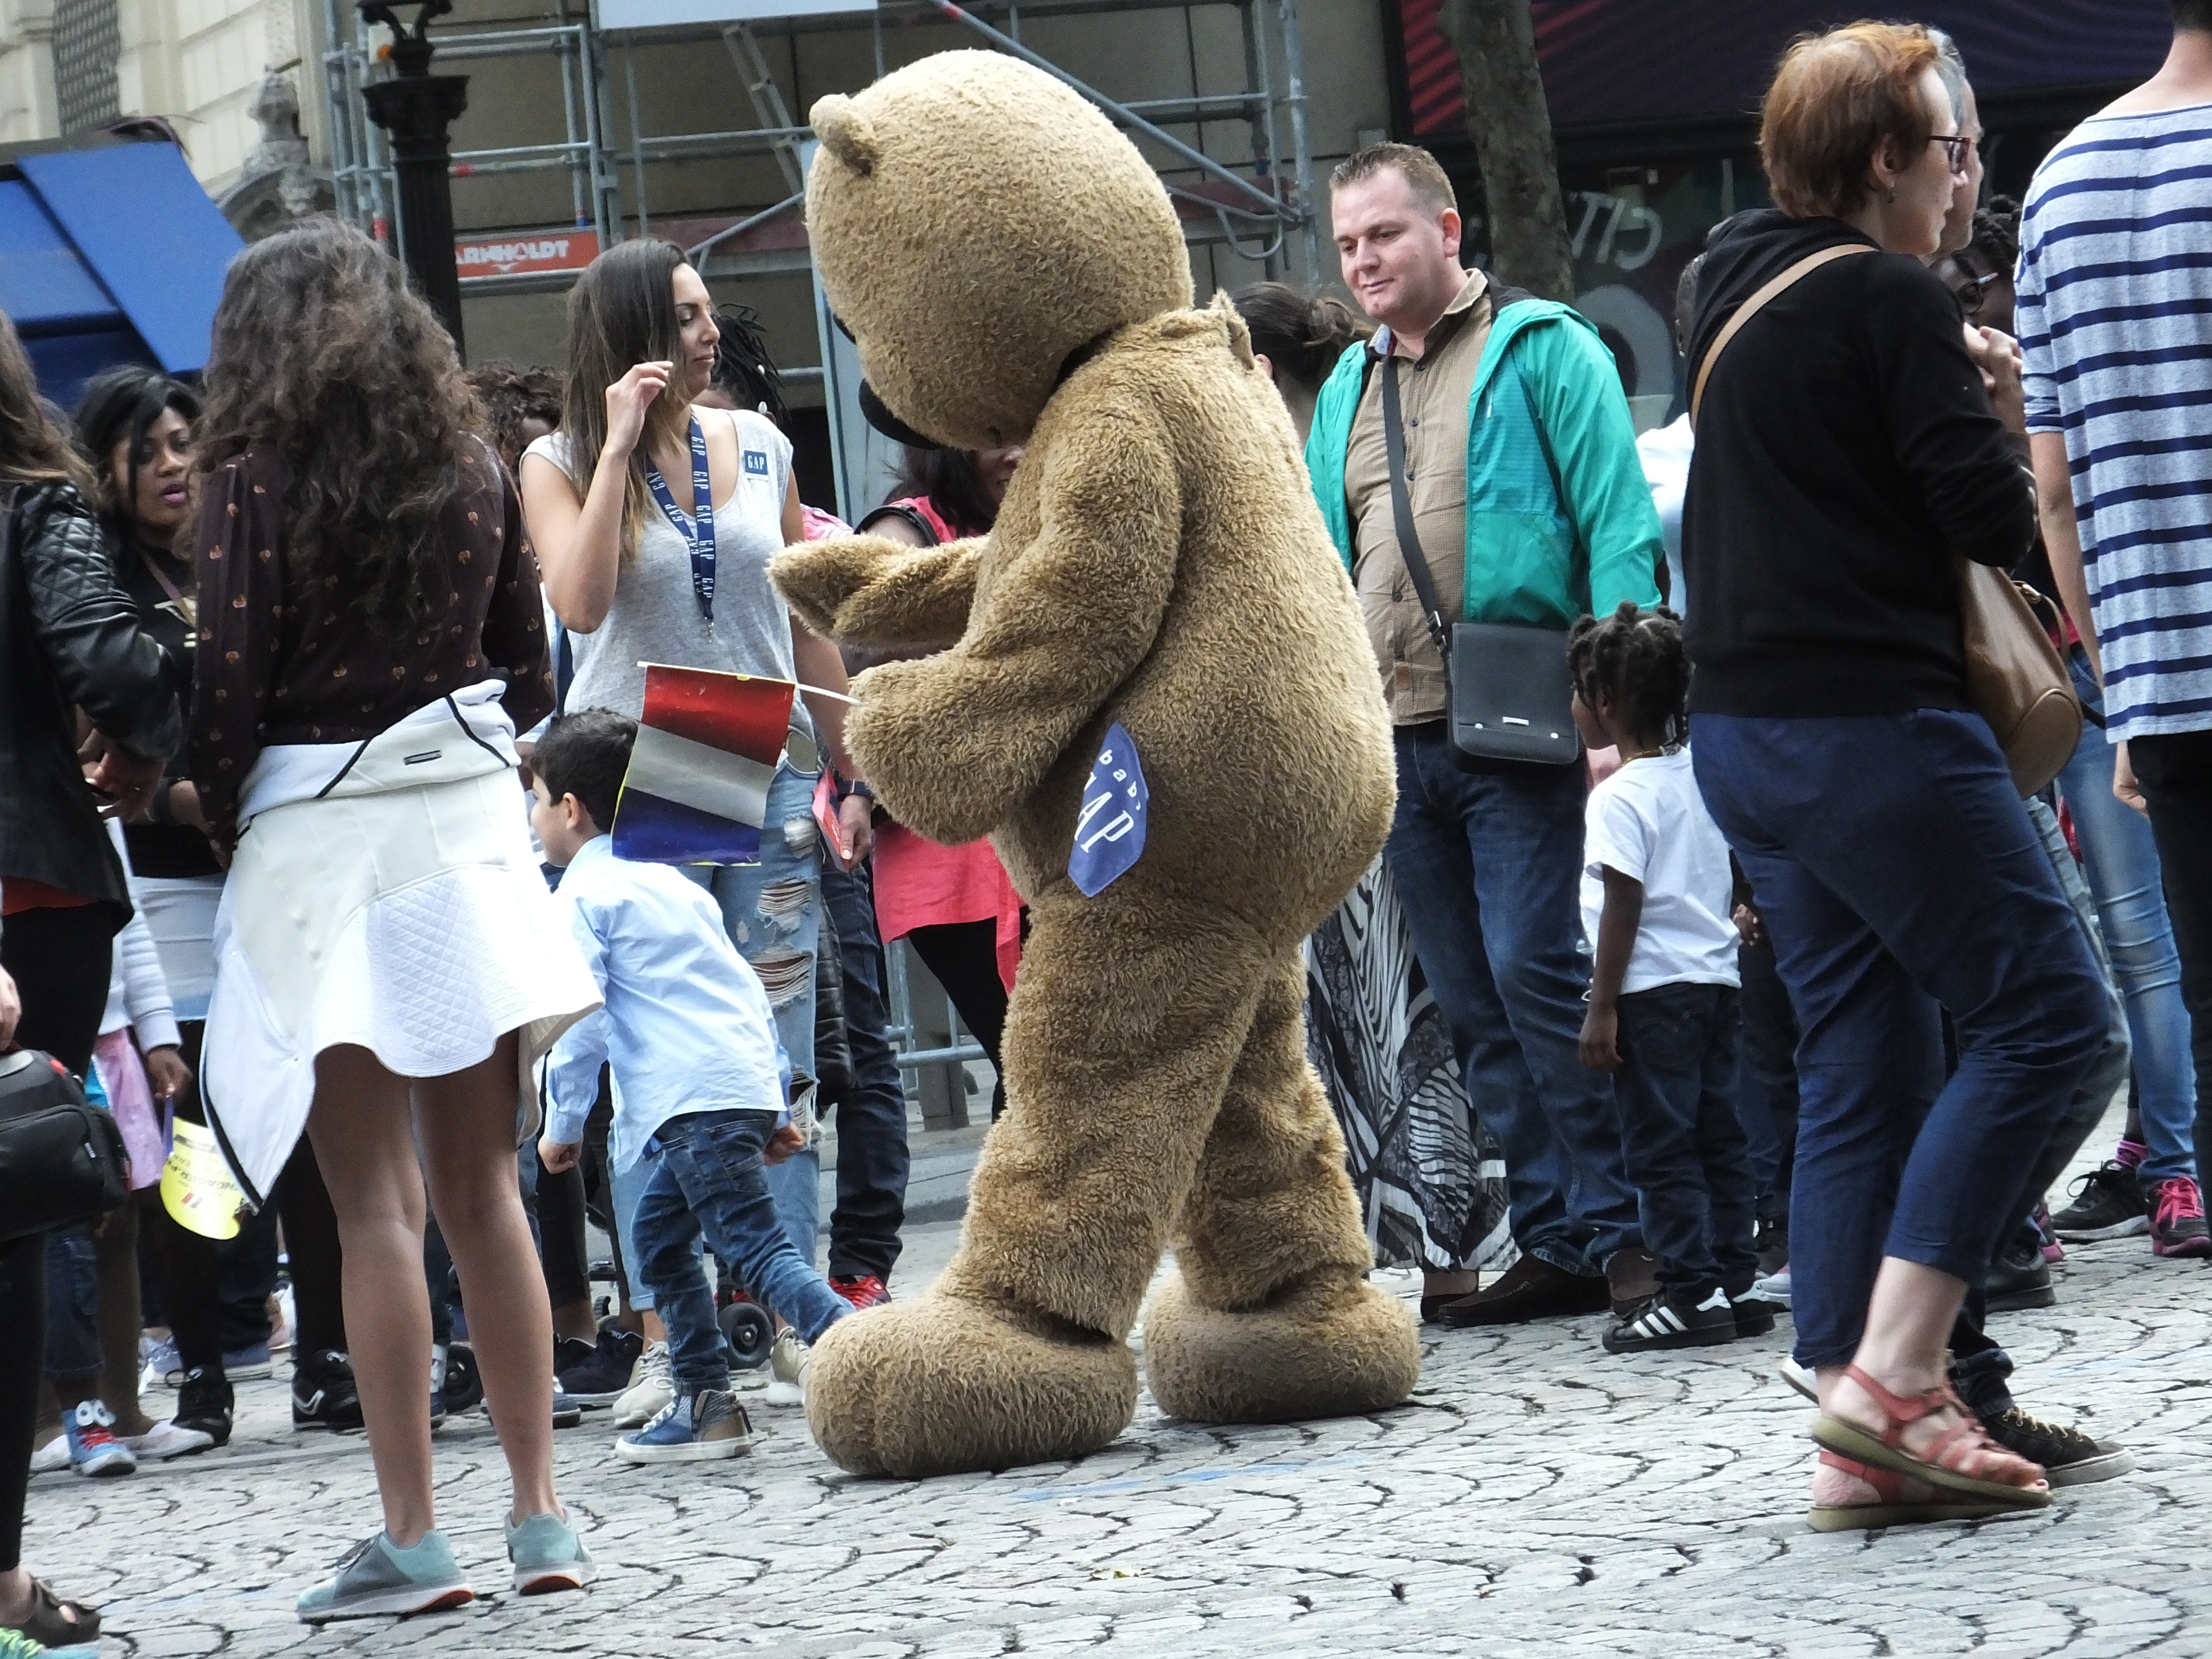 There was a big Teddy bear walking down the center of Les Champs